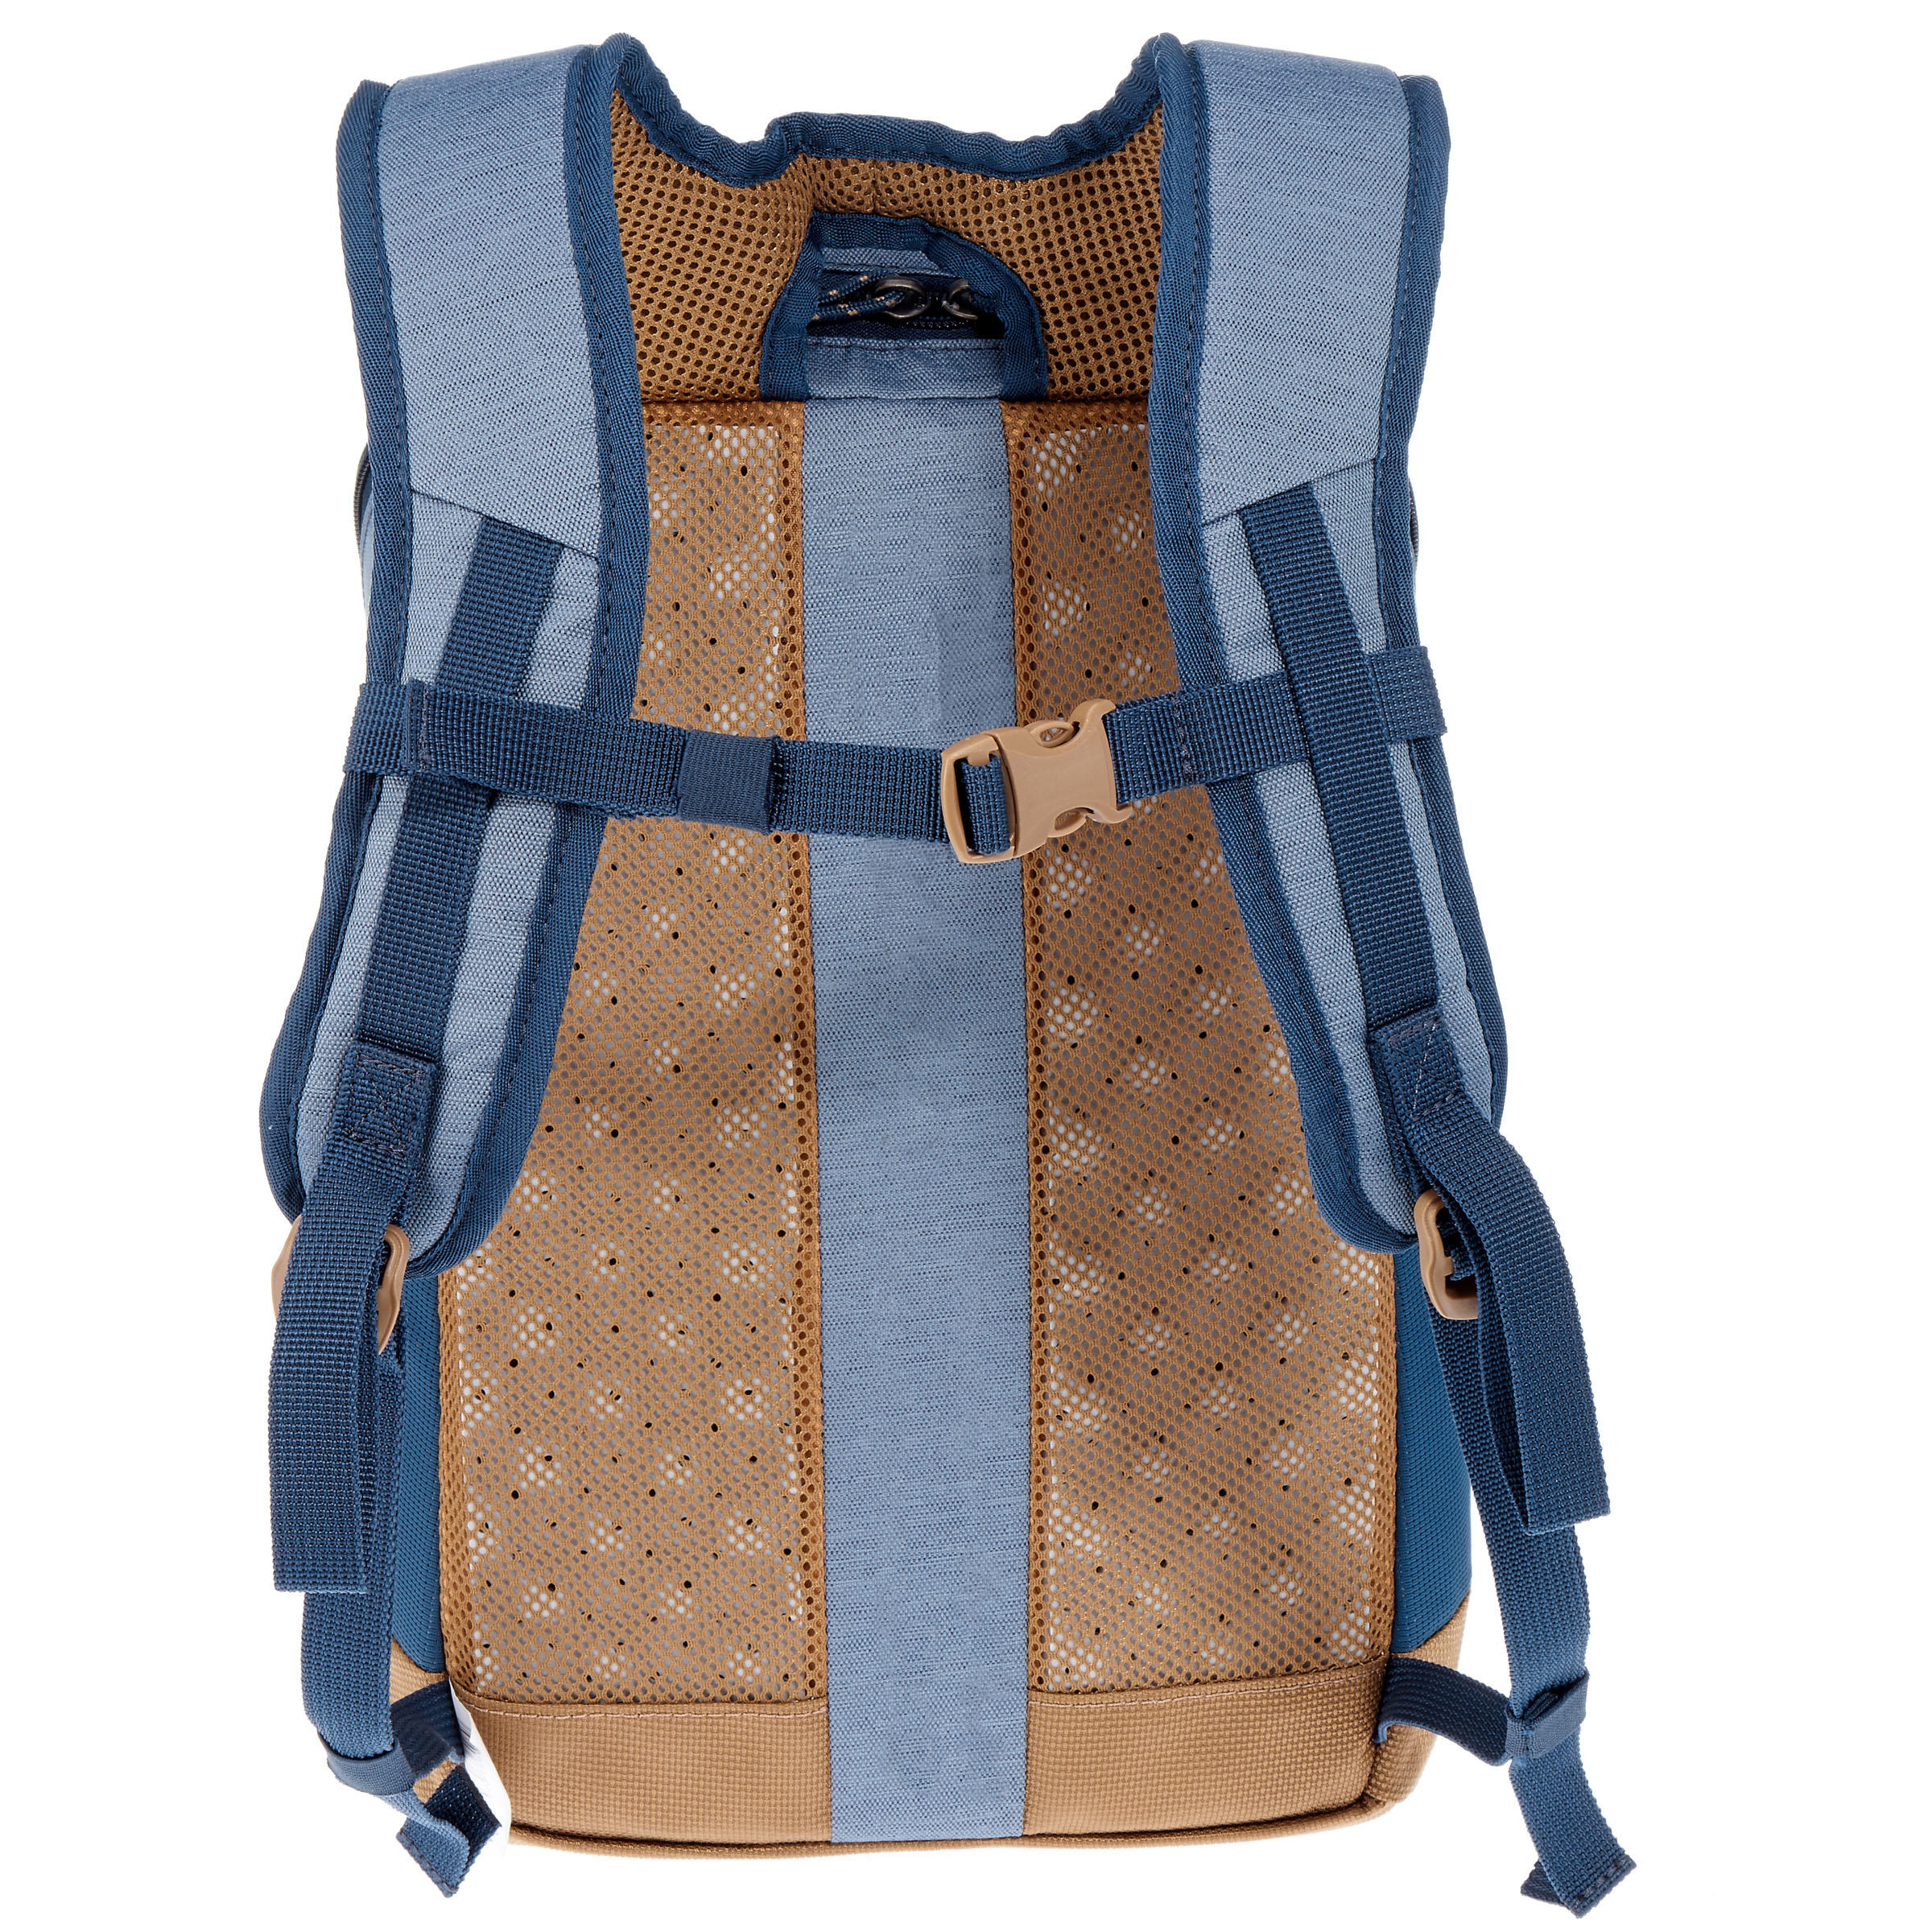 10L Country Walking Backpack NH500 - Blue